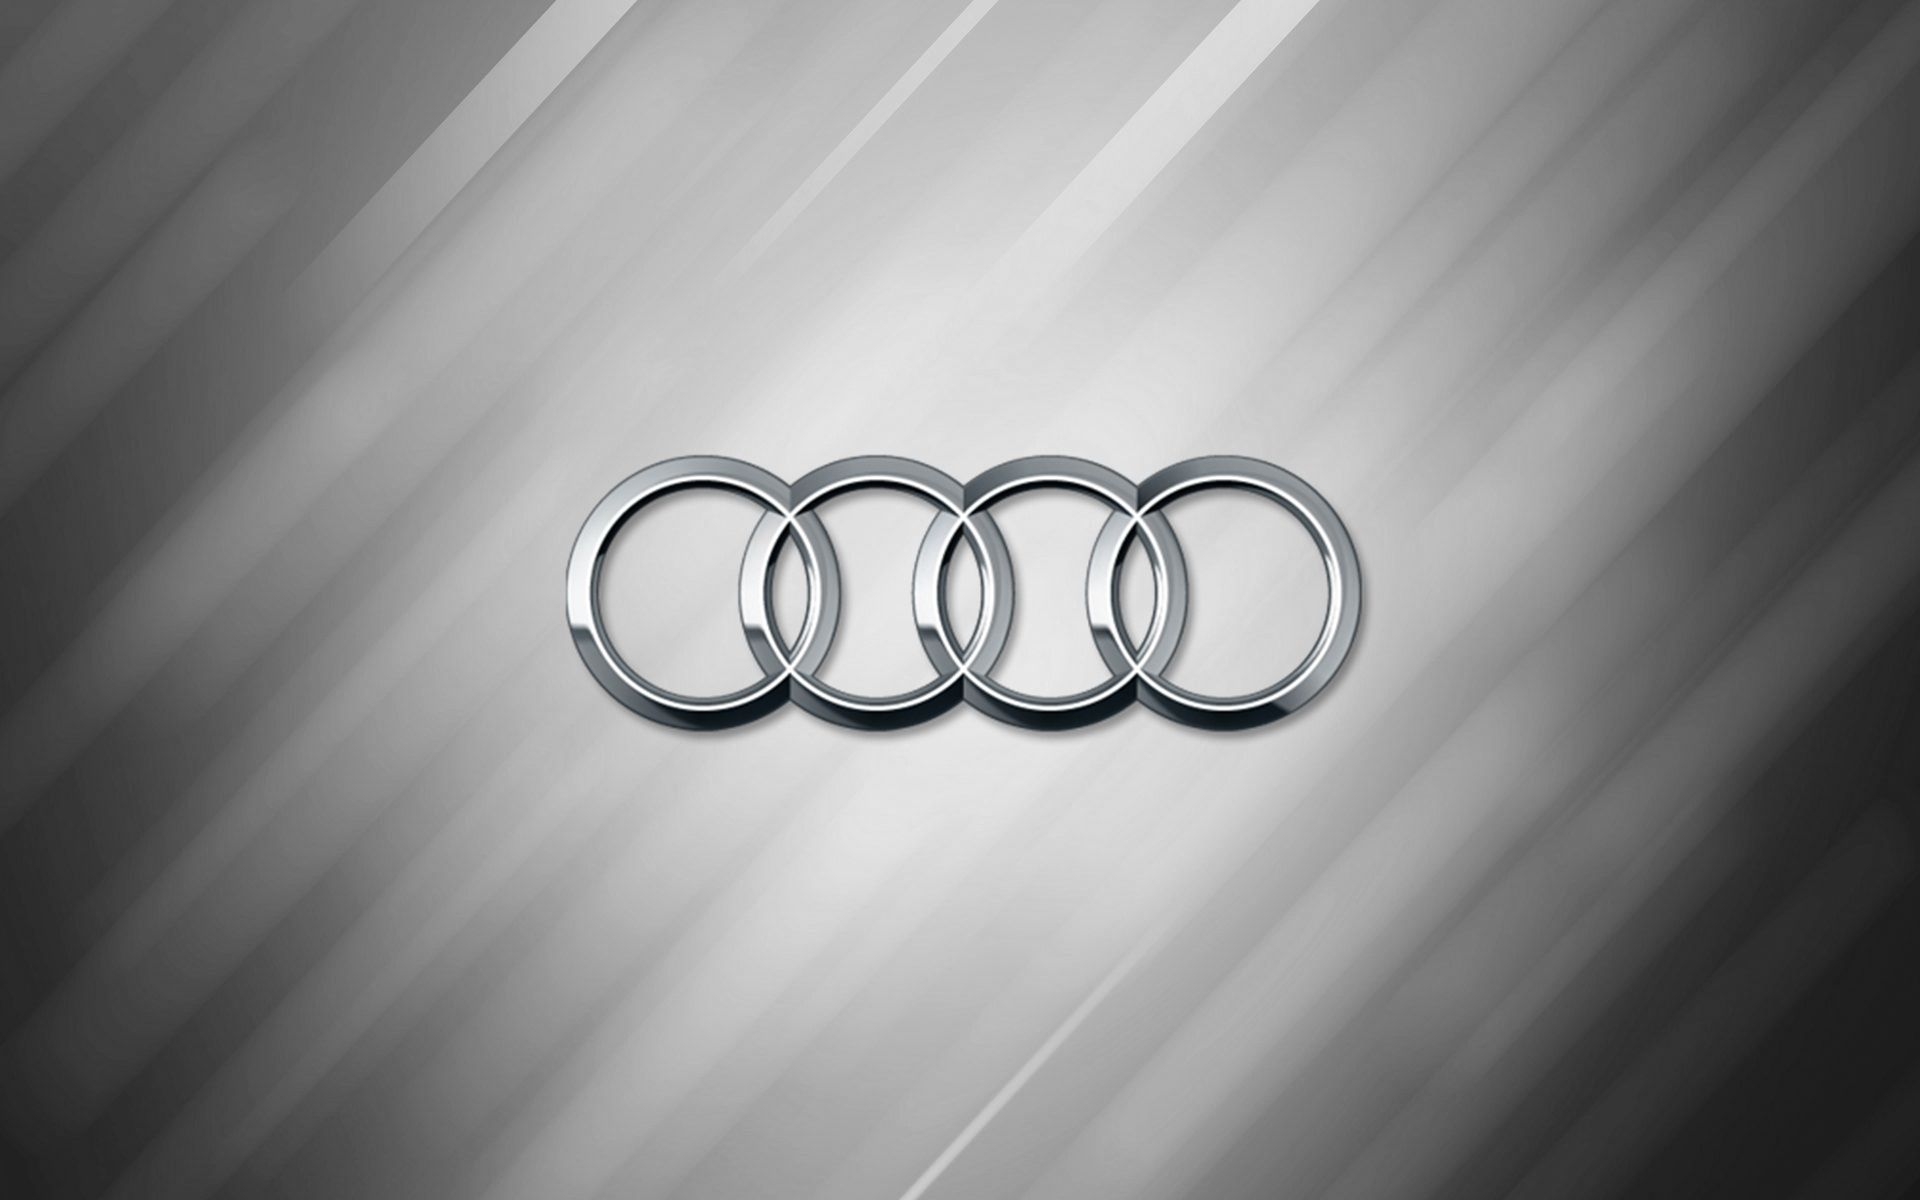 audi logo wallpapers desktop audi logo pinterest logo wallpaper hd car logos and audi rs6. Black Bedroom Furniture Sets. Home Design Ideas